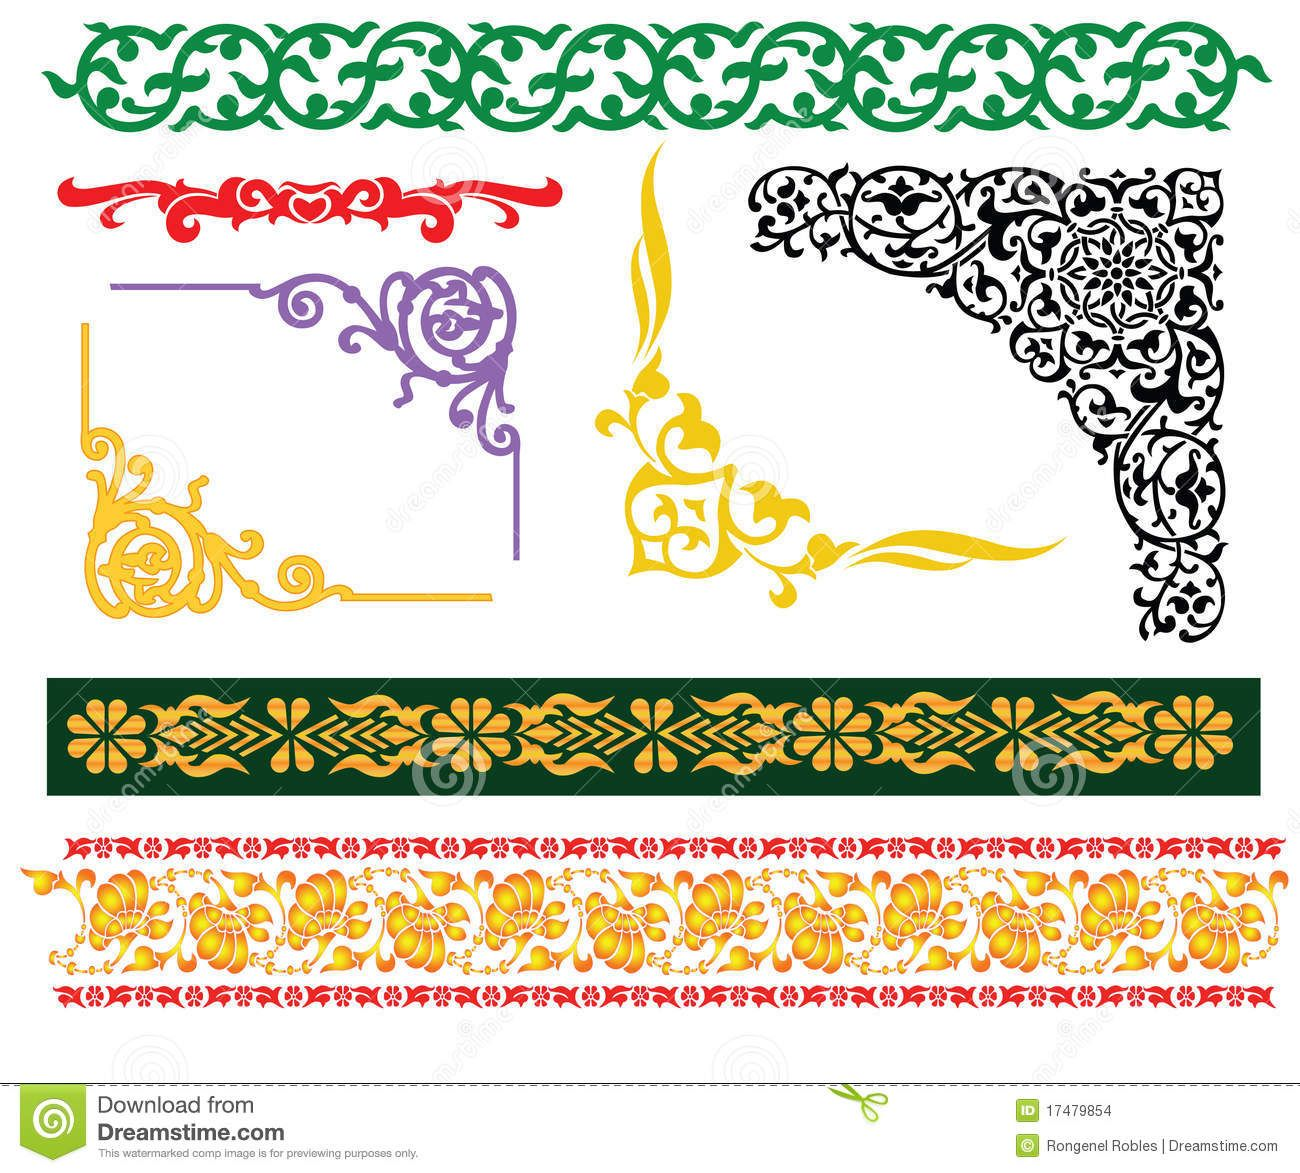 Malay islamic borders ornament download from over 62 million malay islamic borders ornament download from over 62 million high quality stock photos images thecheapjerseys Image collections